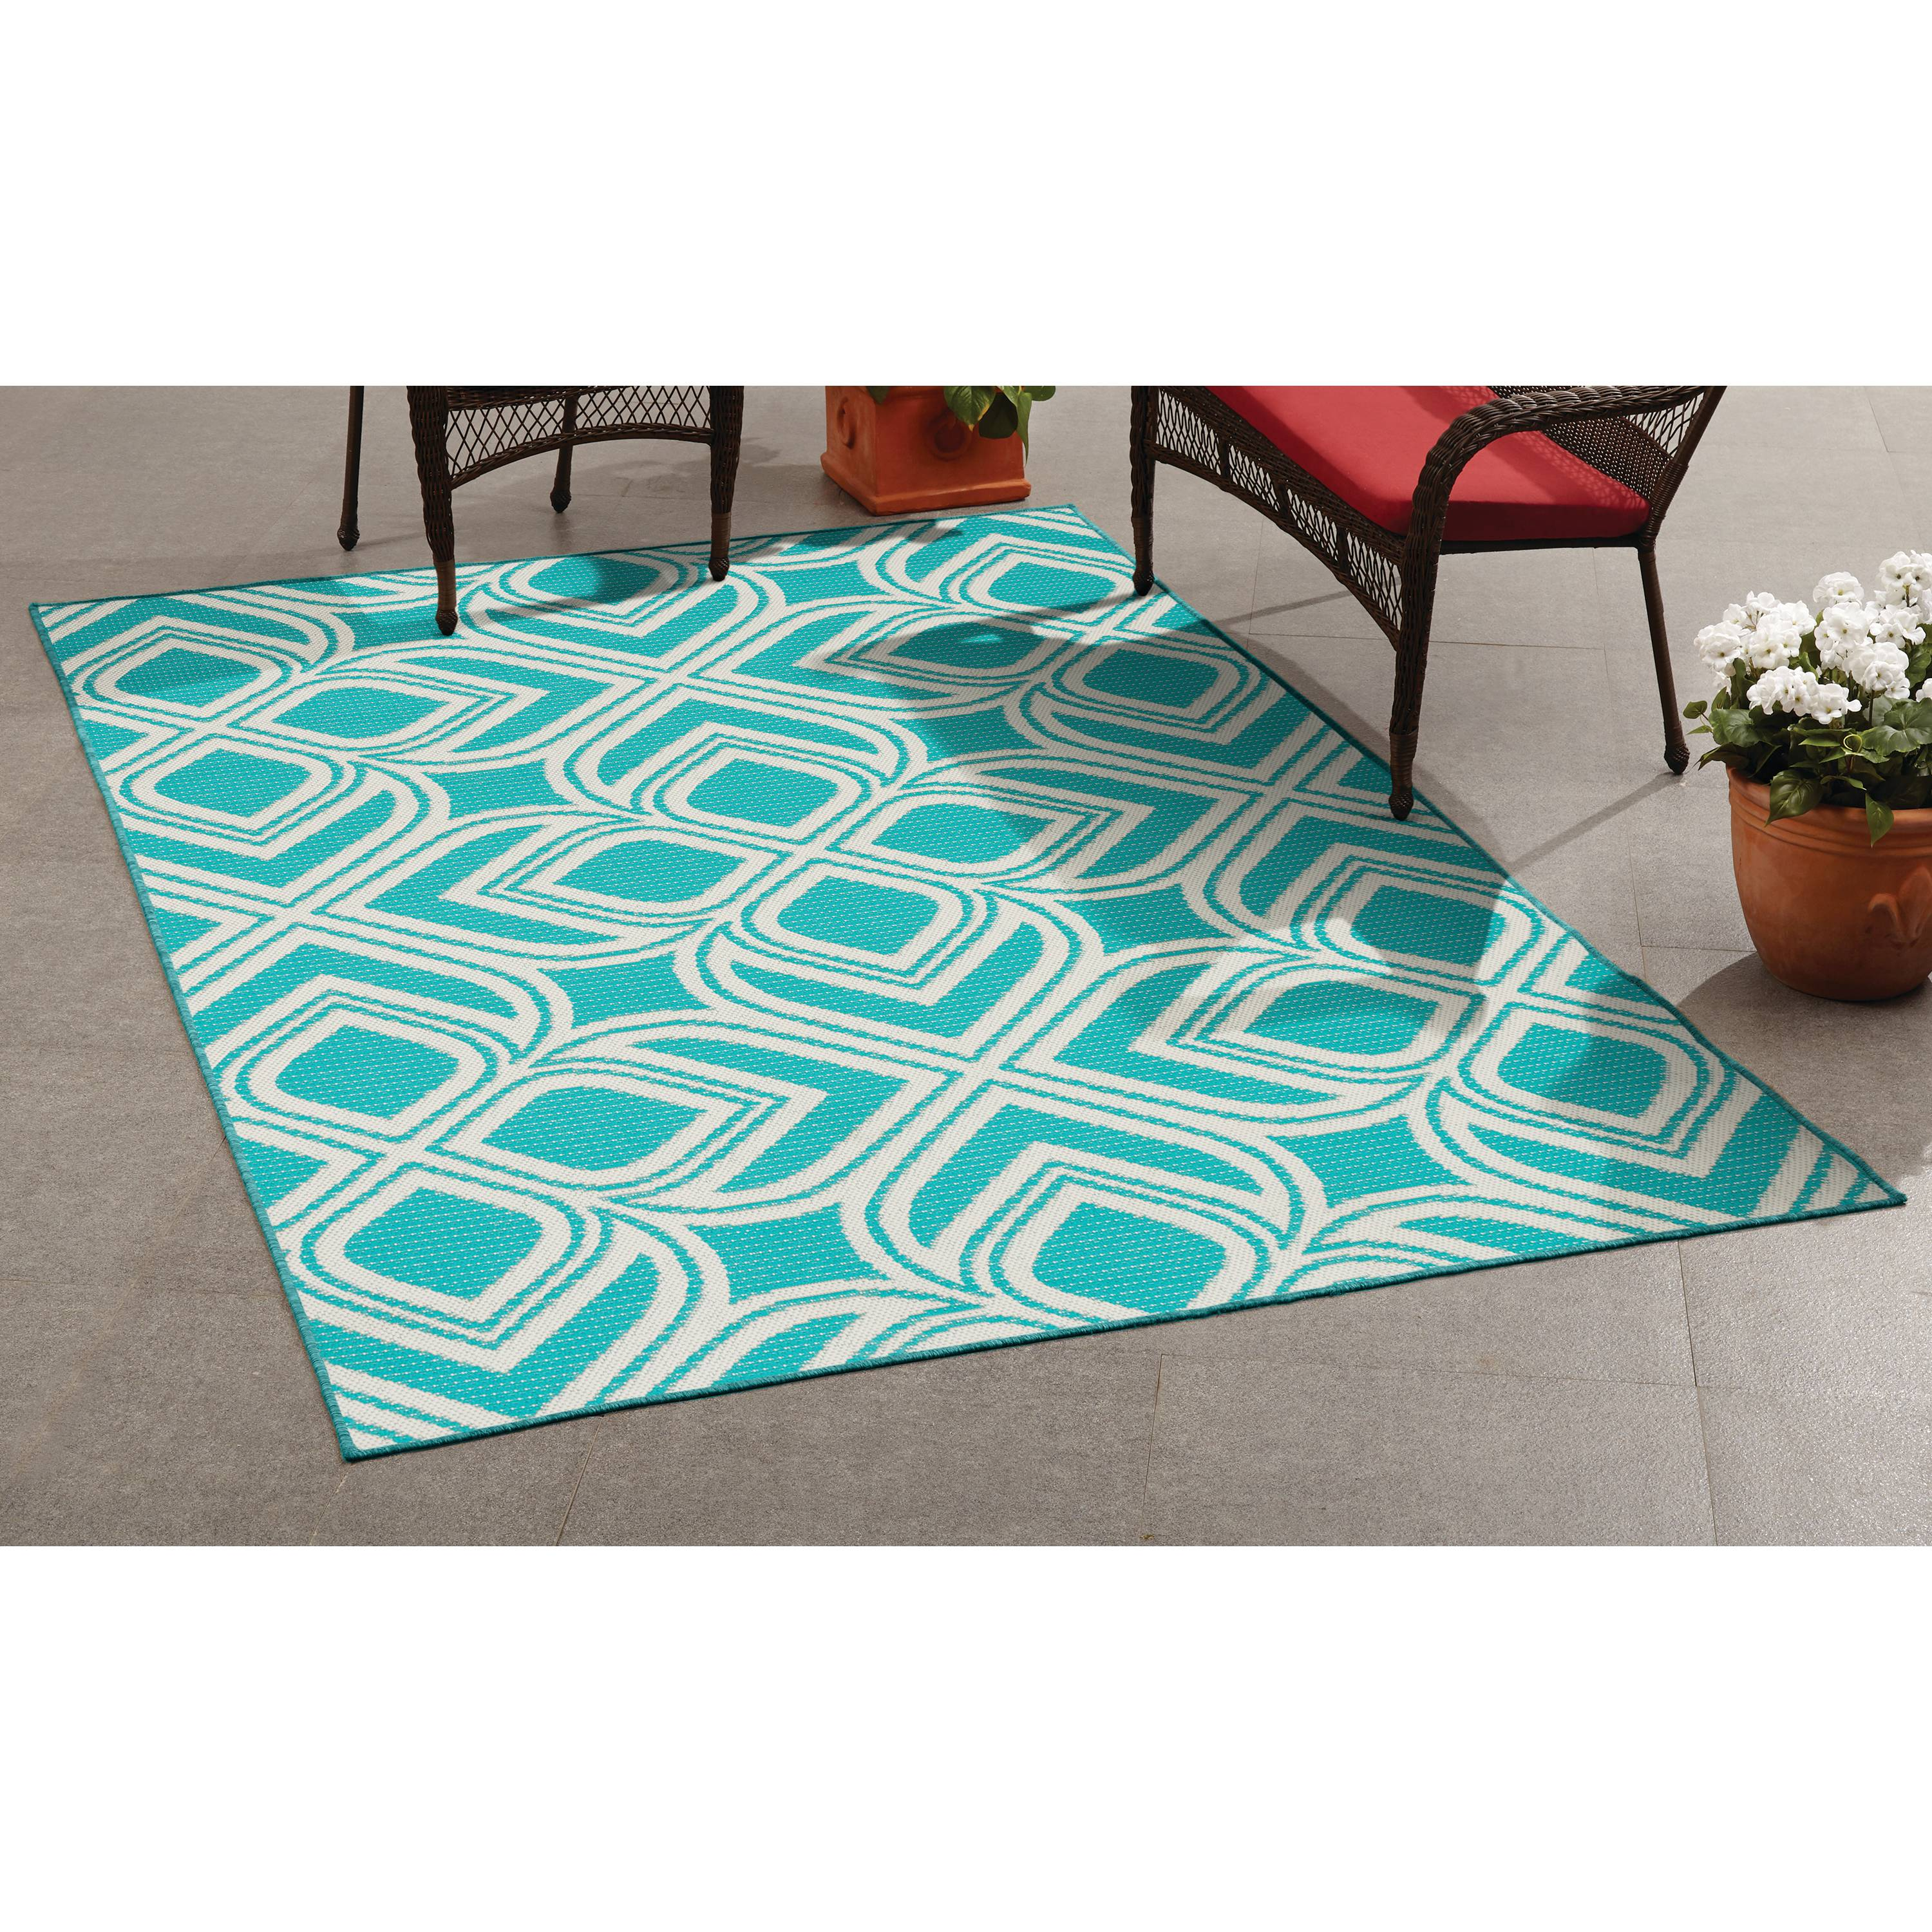 Mainstays Maisntays 5x7 Outdoor Teal Rug